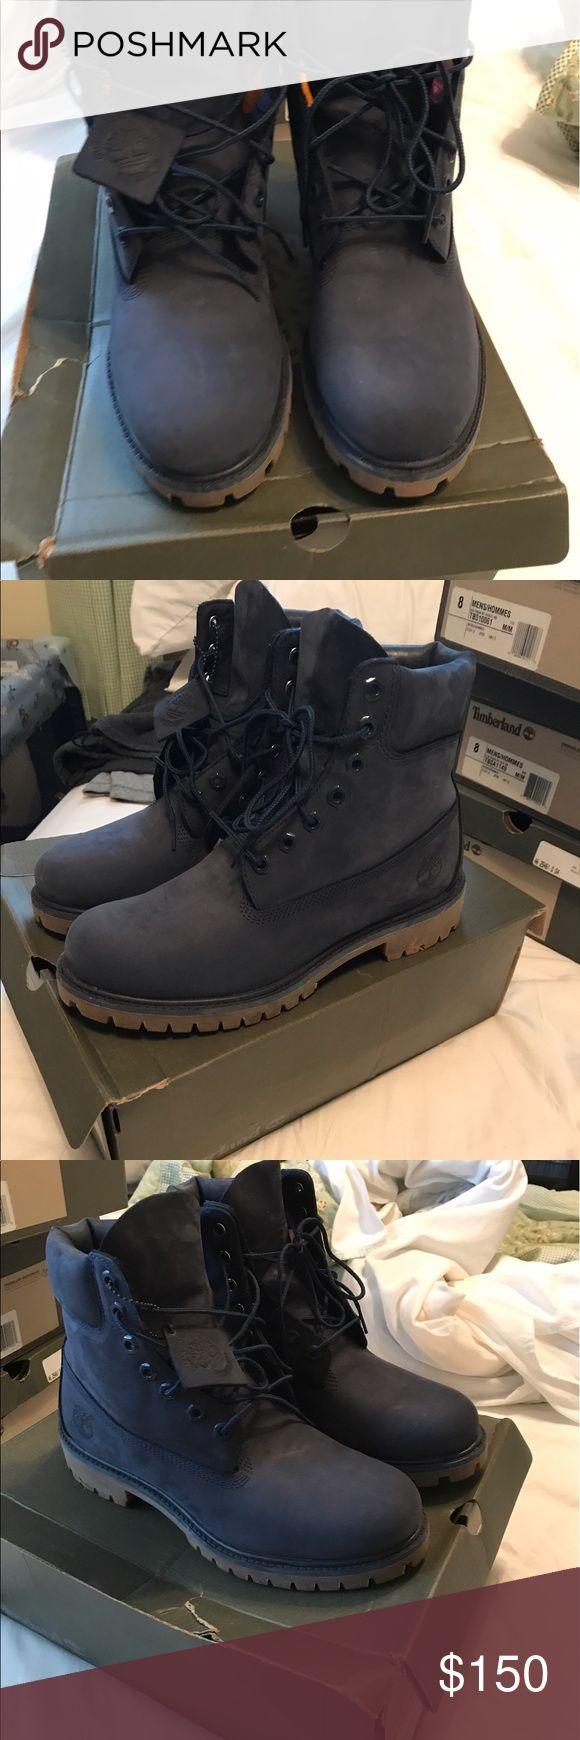 Navy blue timberland boots. Navy blue timberlands. Worn twice. 100% authentic. Size 8. Like brand new. $150 OBO. No low ballers. Timberland Shoes Chukka Boots